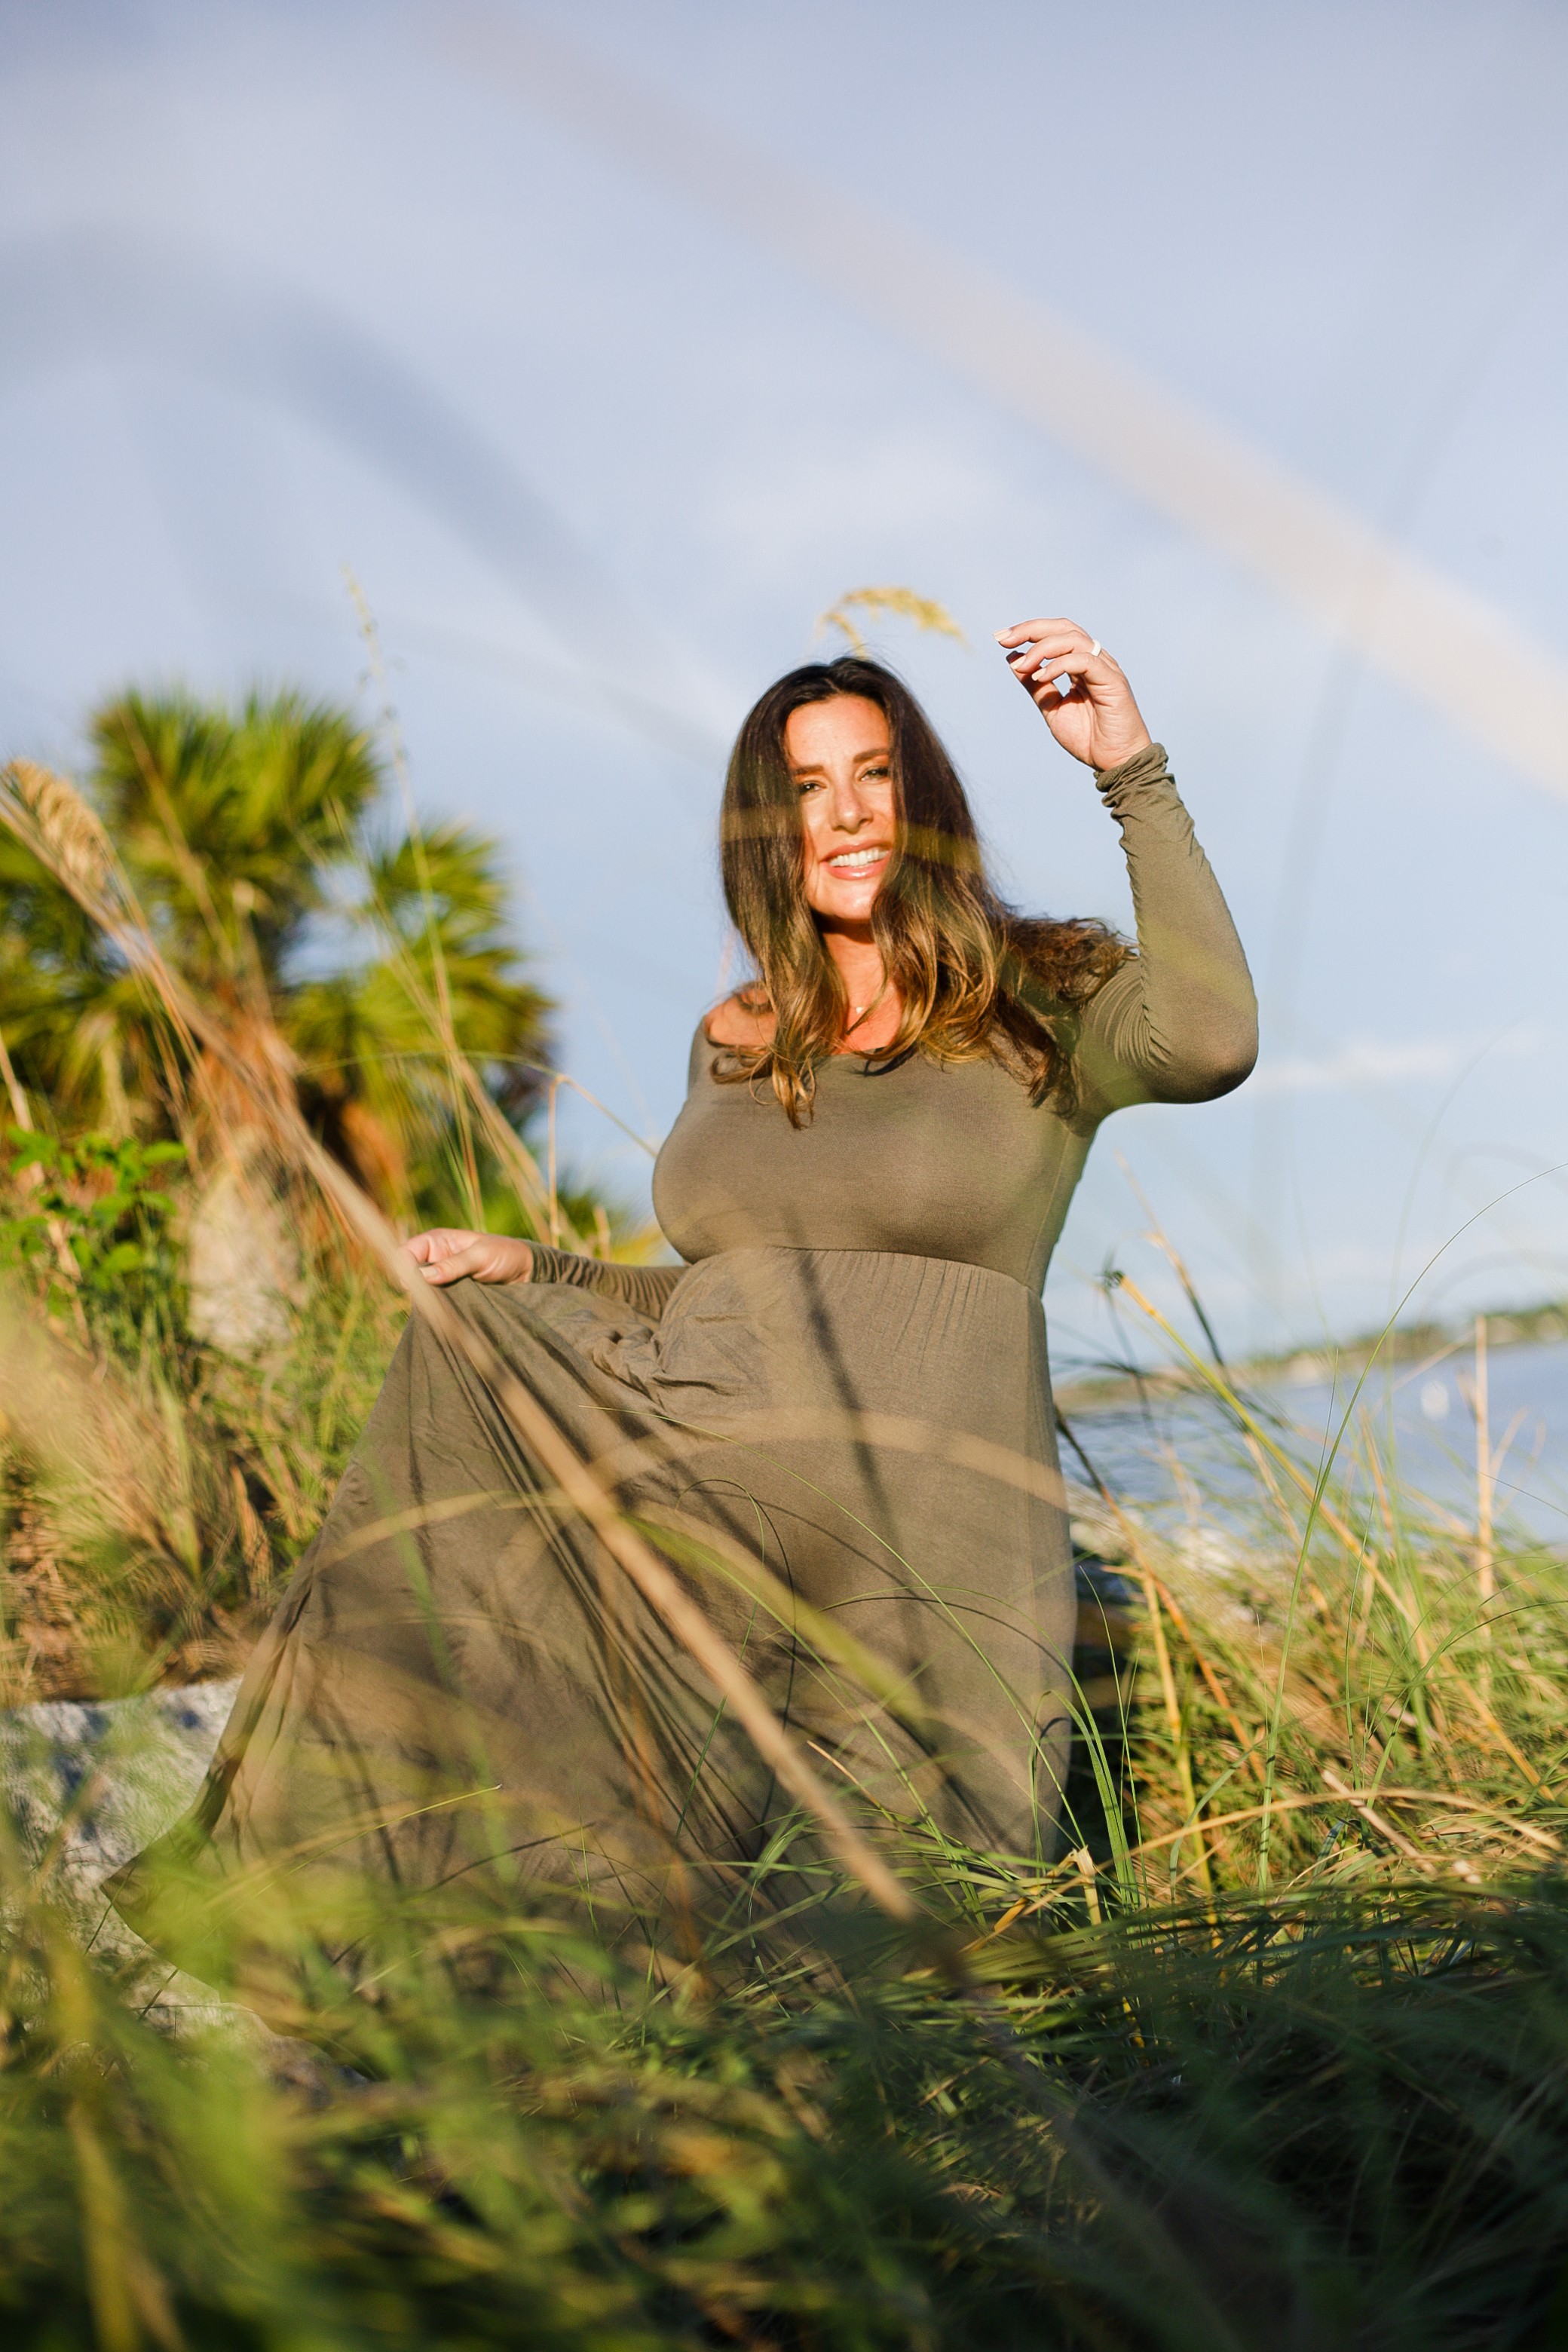 Maternity in olive green dress from Pink Blush Maternity, plus other olive green dress options! Beach maternity pictures and pregnancy photoshoot ideas from top Florida lifestyle blogger Tabitha Blue of Fresh Mommy Blog. | A Beach Maternity Photoshoot in Olive Green by popular Florida life and style blog, Fresh Mommy: image of a woman standing outside at the beach and wearing a Pink Blush Olive Solid Off Shoulder Maternity Maxi Dress.